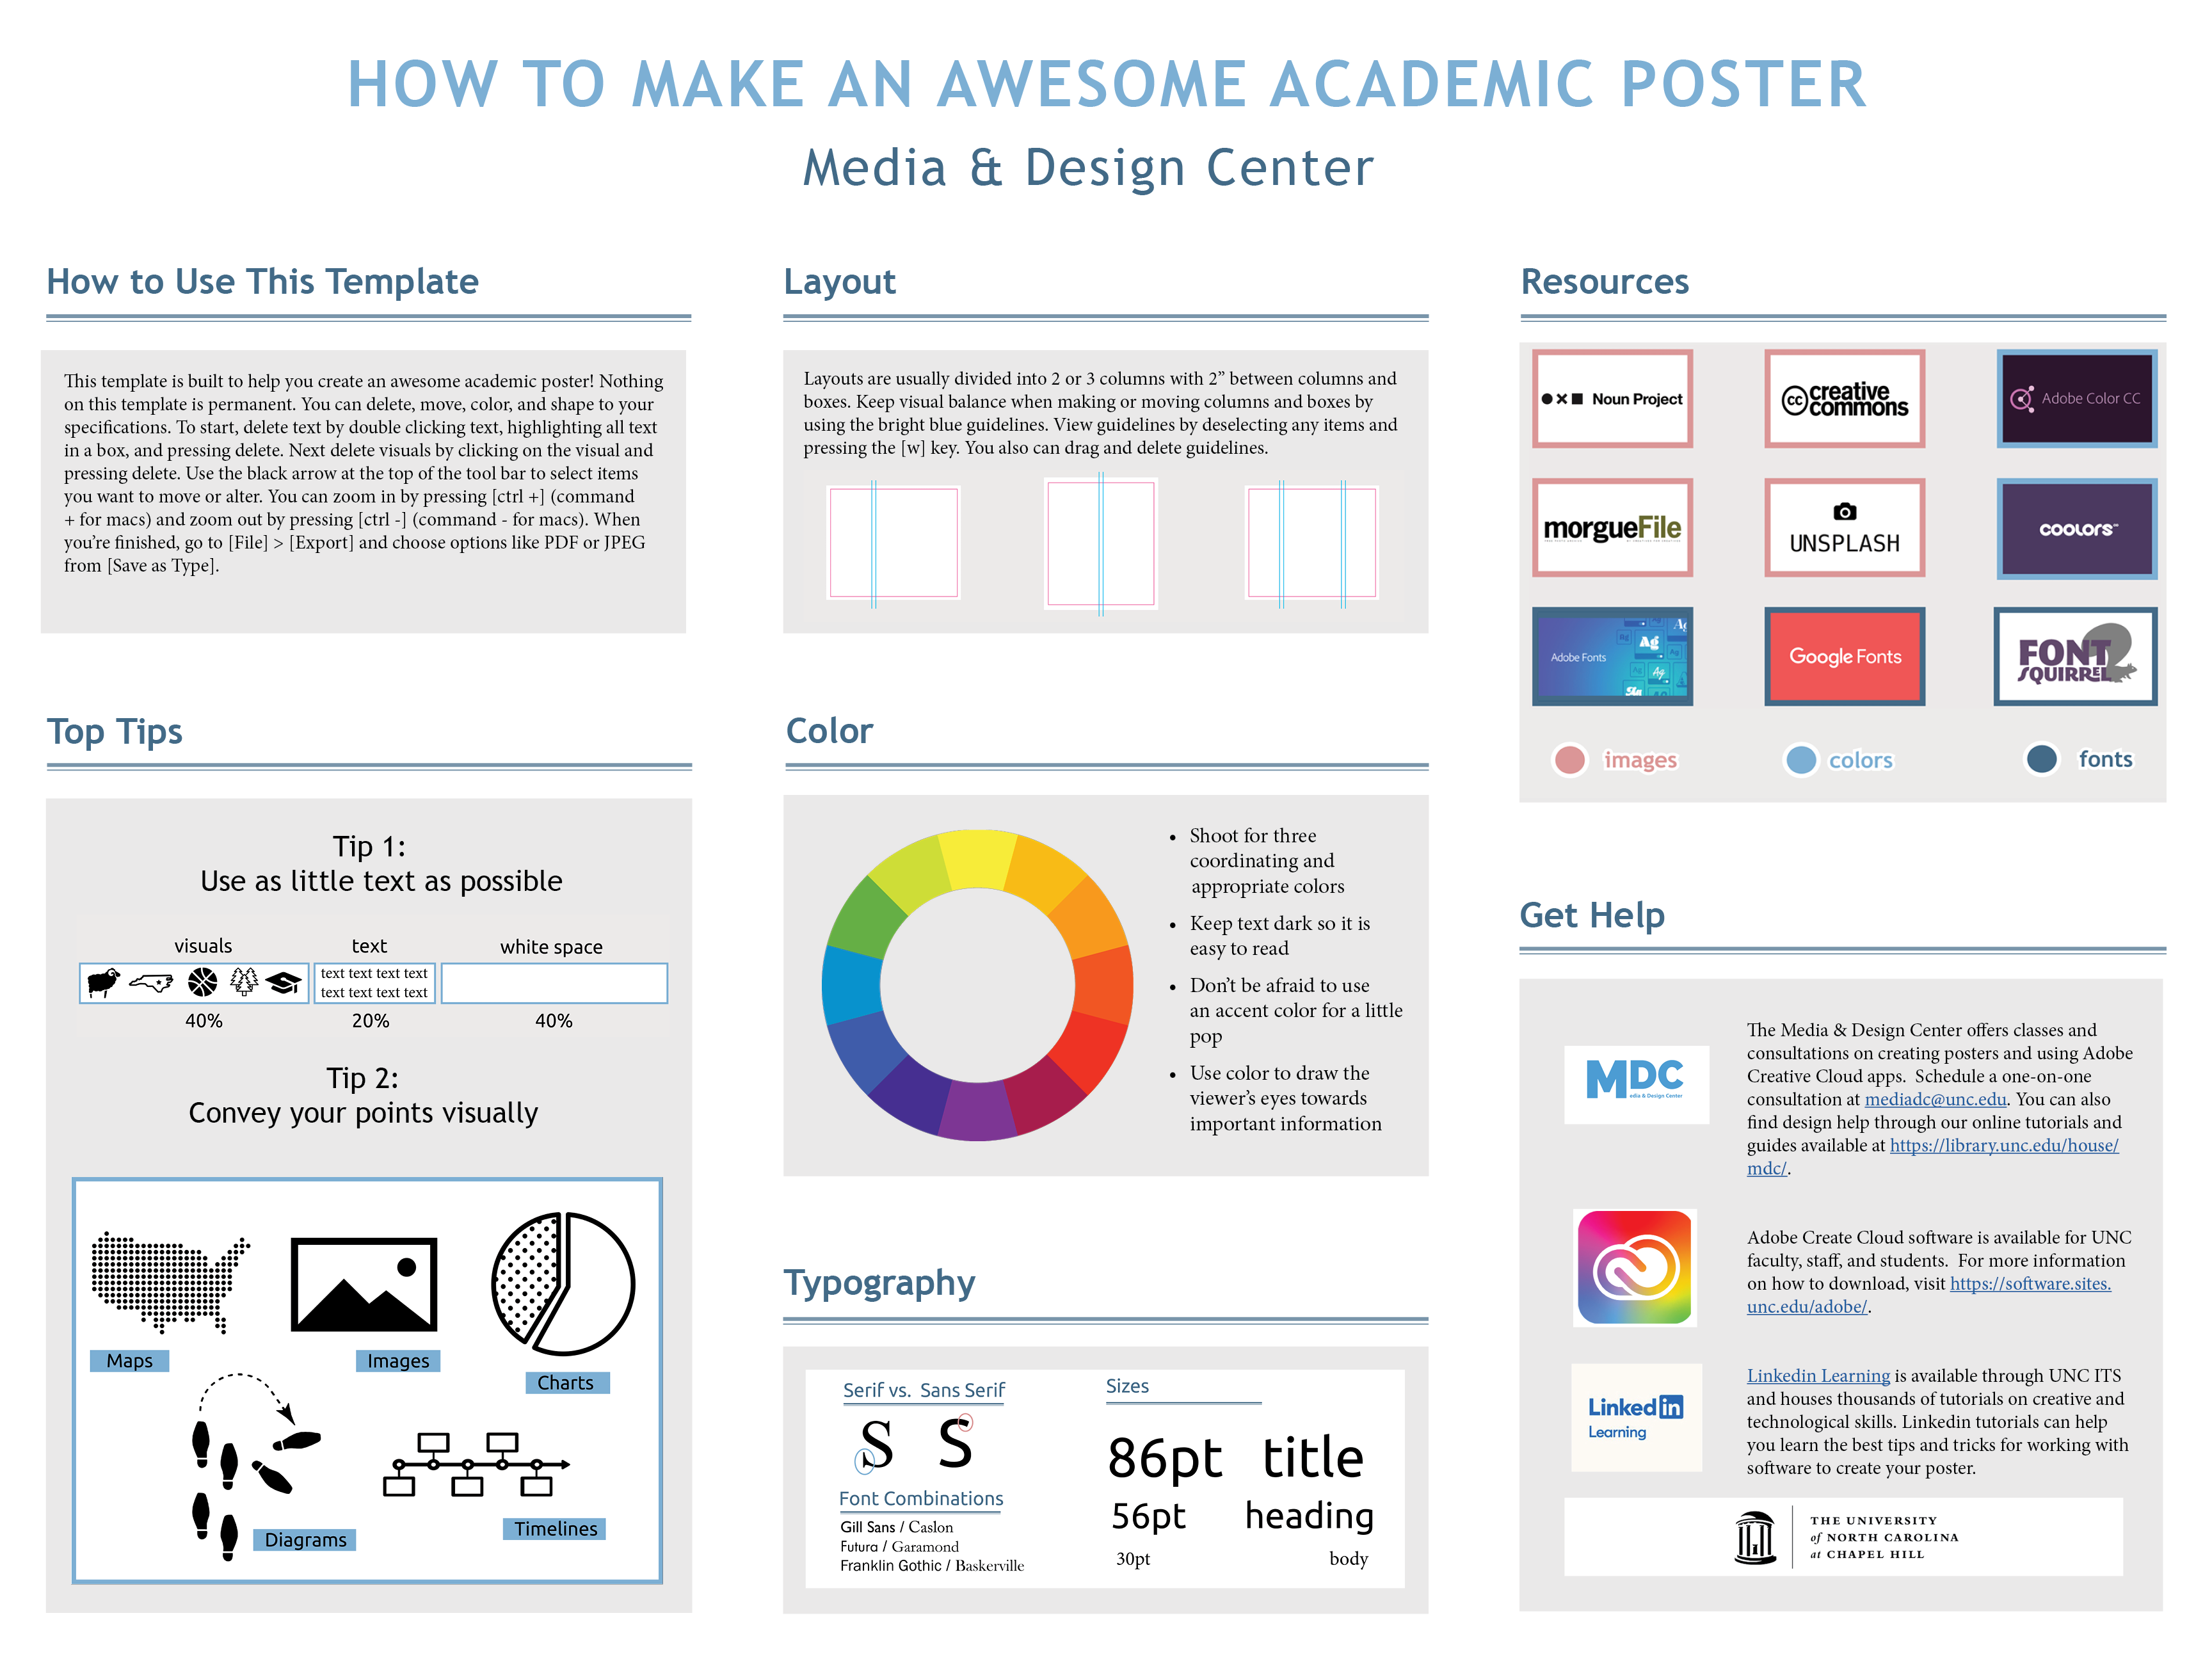 Poster template designed by MDC